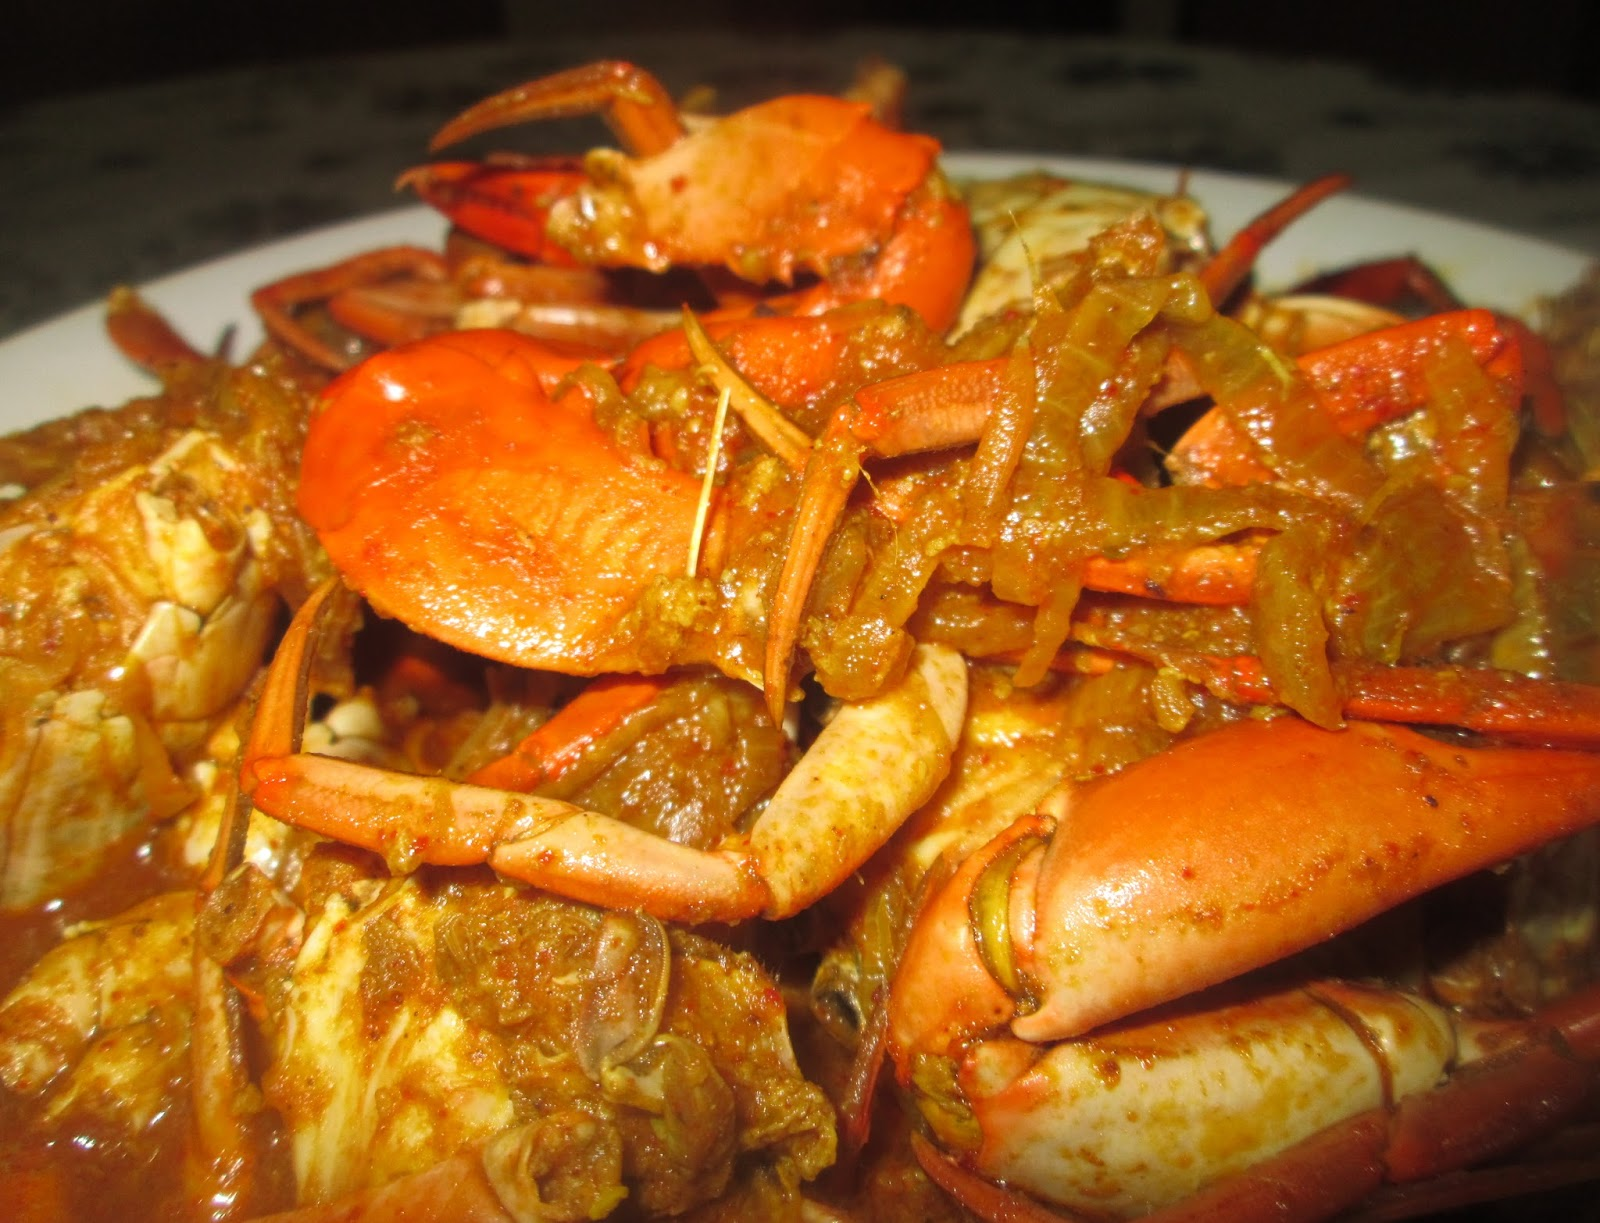 Kakrar jholindianbengali crab curry recipe puskins kitchen kakrar jholindianbengali crab curry recipe forumfinder Image collections